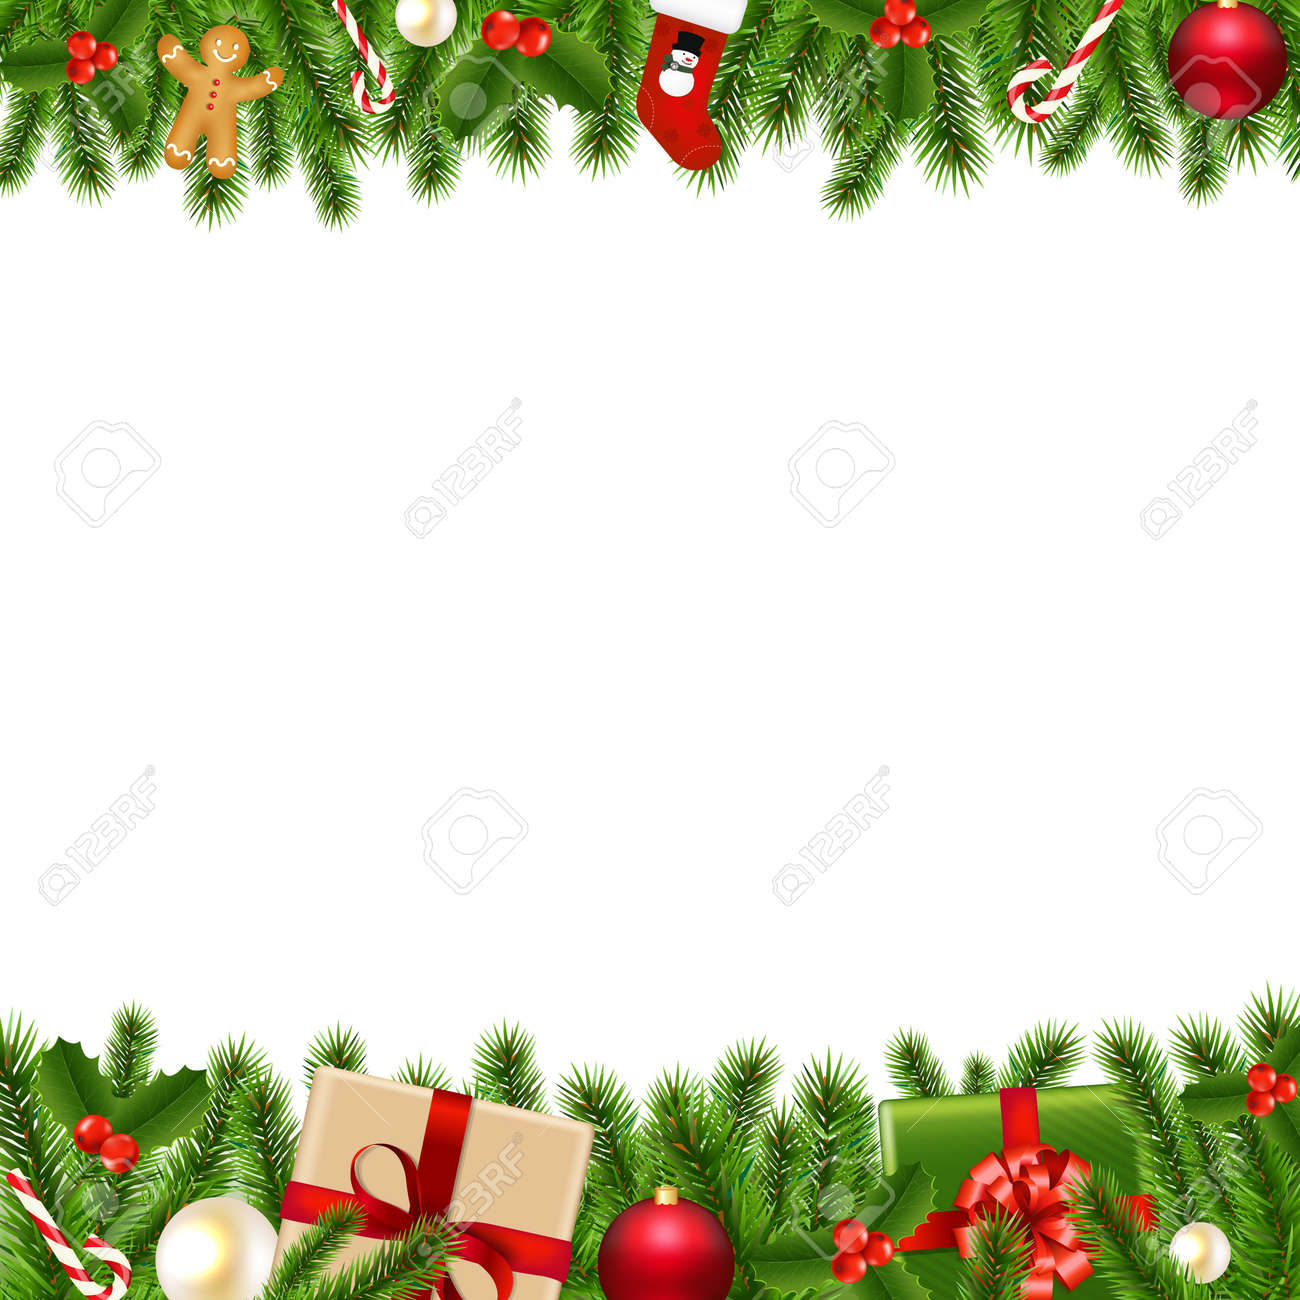 Merry Christmas Borders With Gradient Mesh, Vector Illustration ...